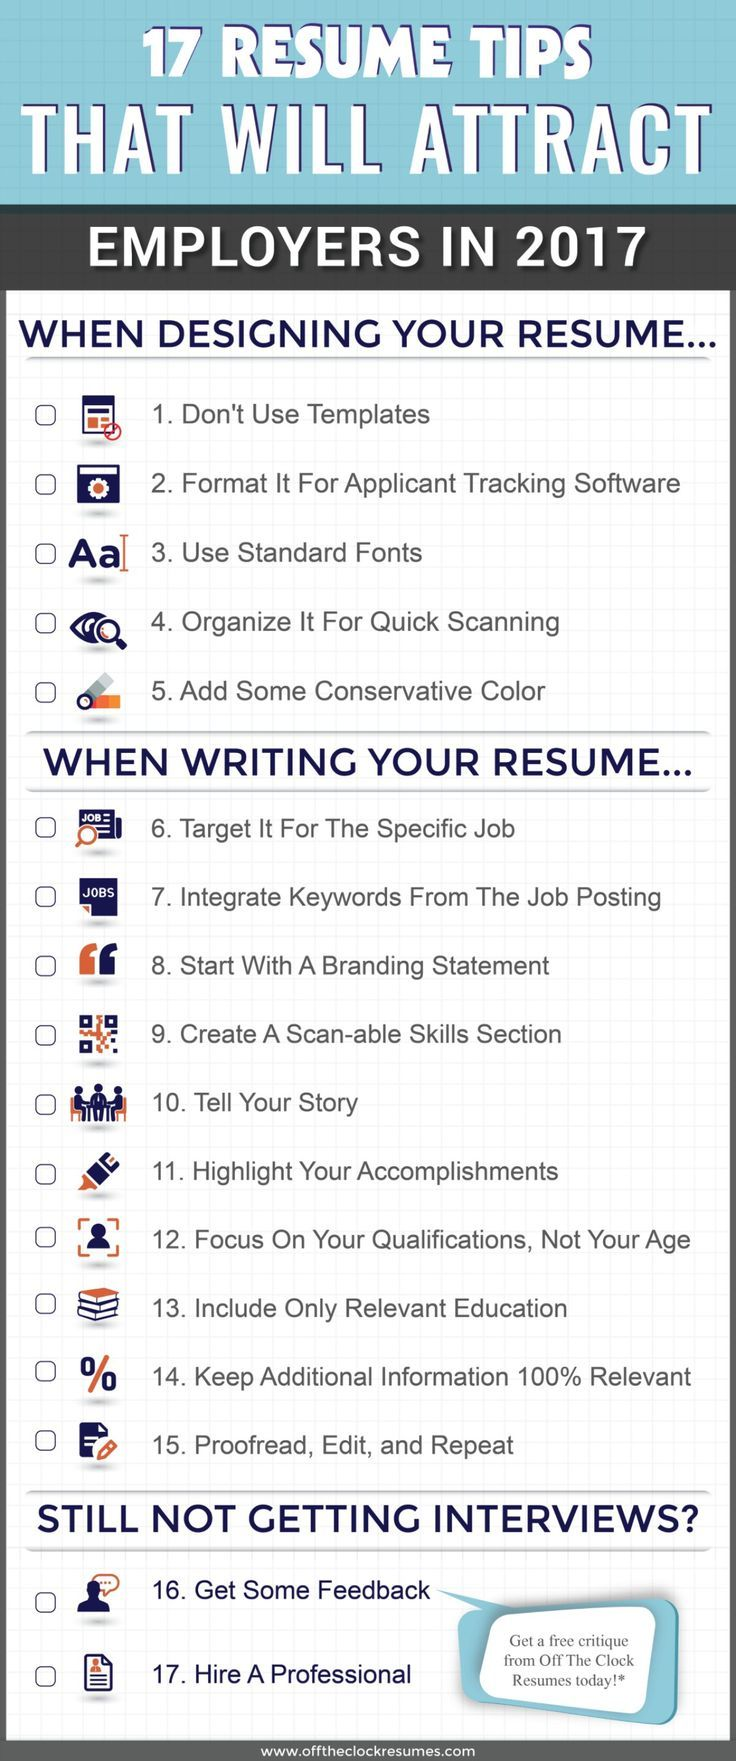 17 resume tips that will attract employers in 2017 infographic off the clock resumes resume helpfree - Is Resume Help Free